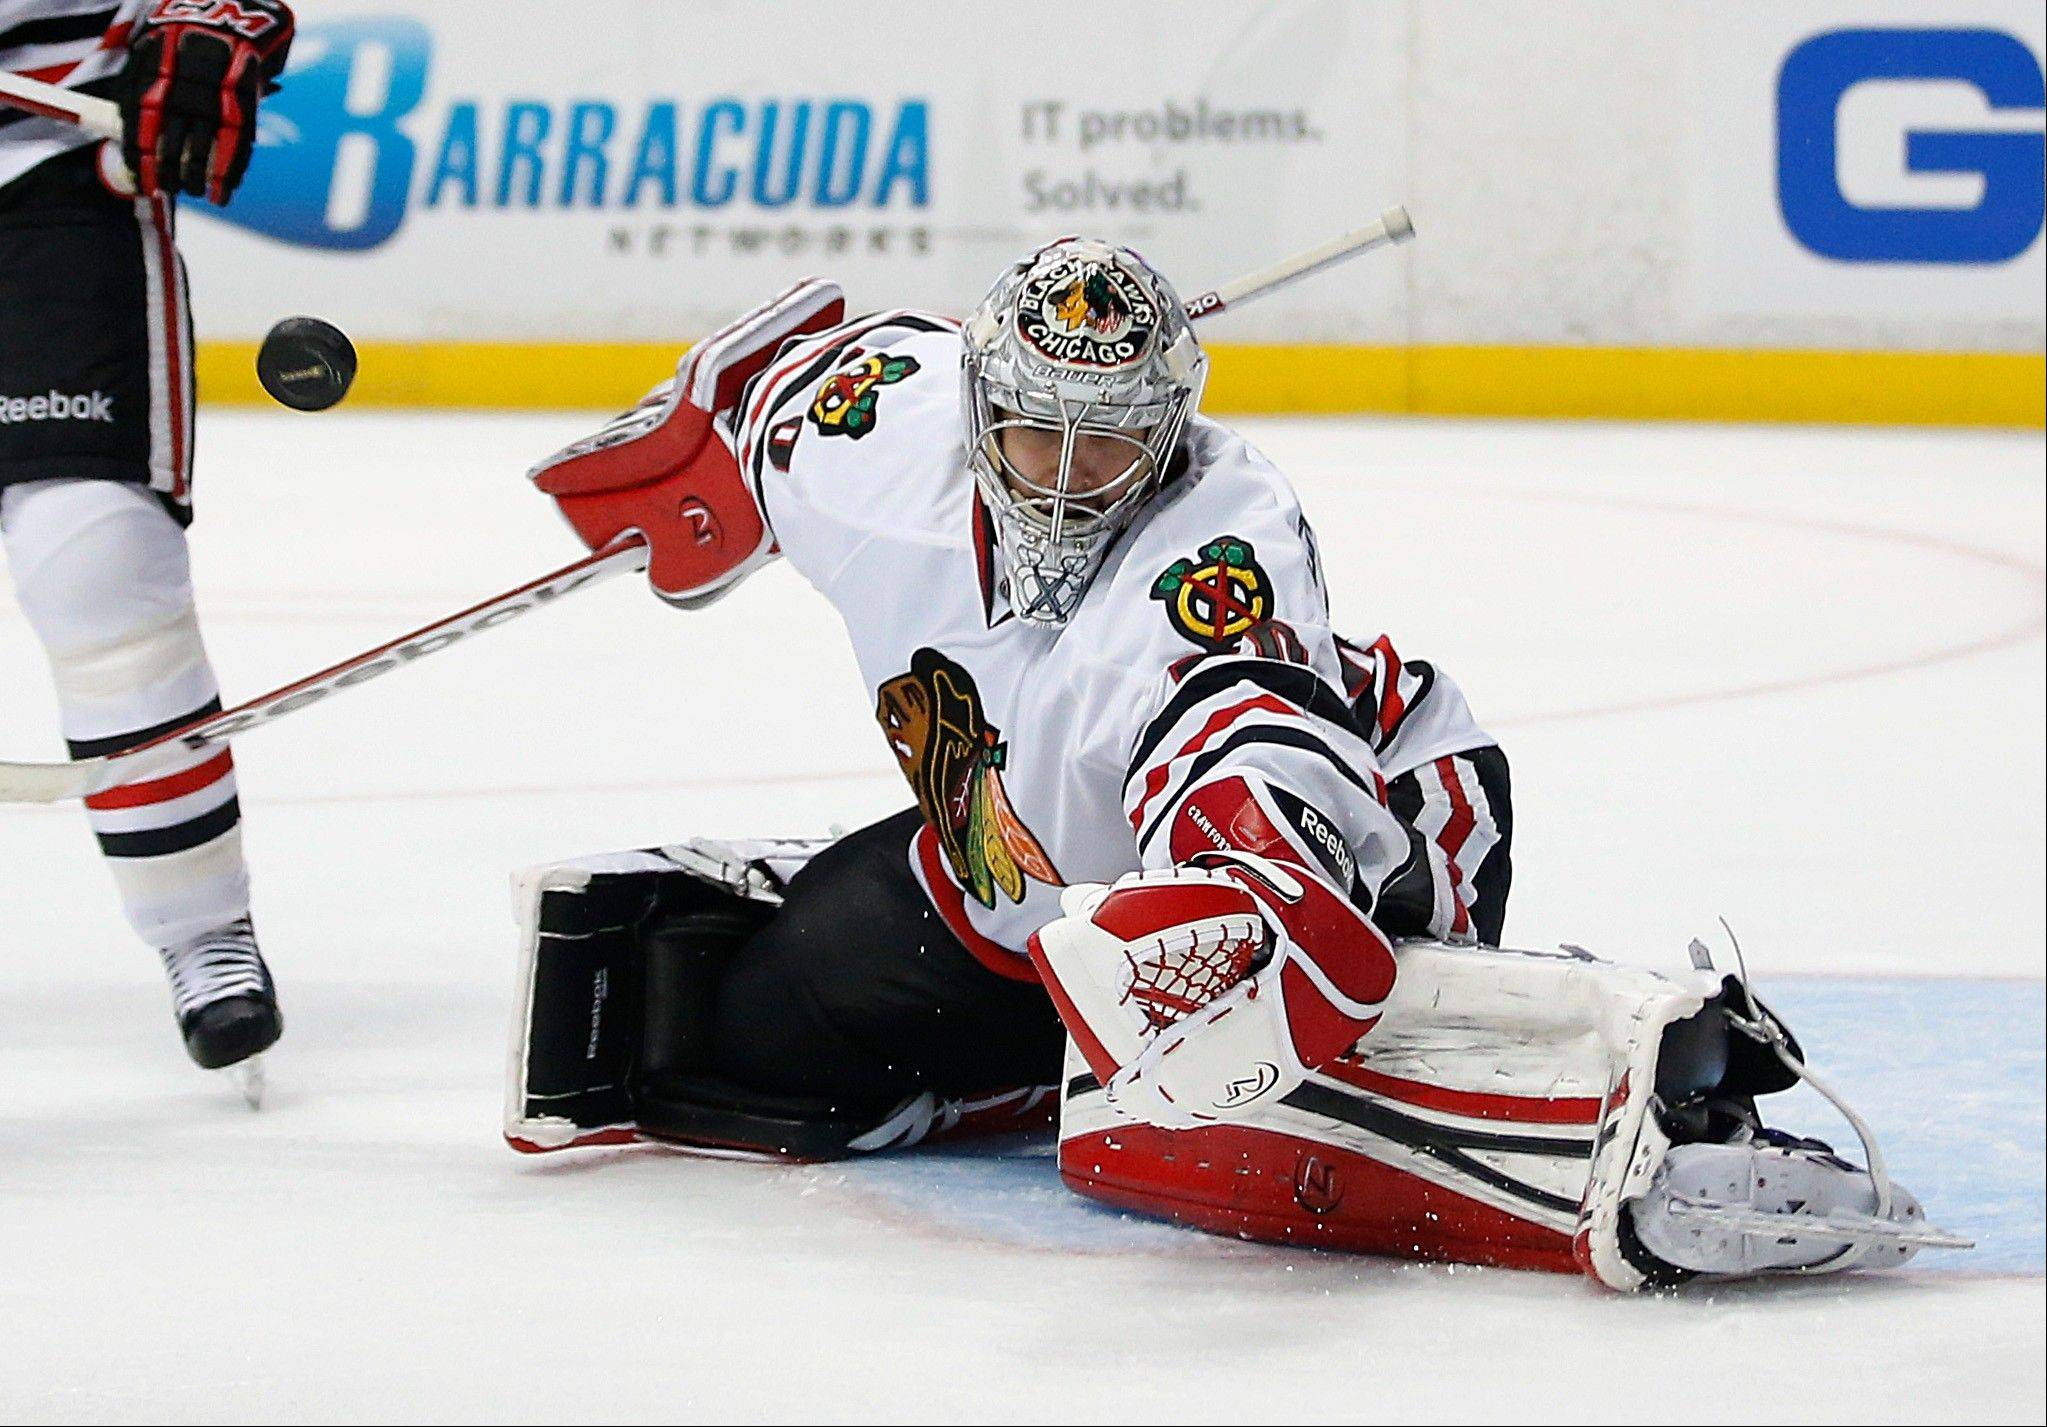 Chicago Blackhawks goalie Corey Crawford deflects a shot by the Anaheim Ducks during the second period.